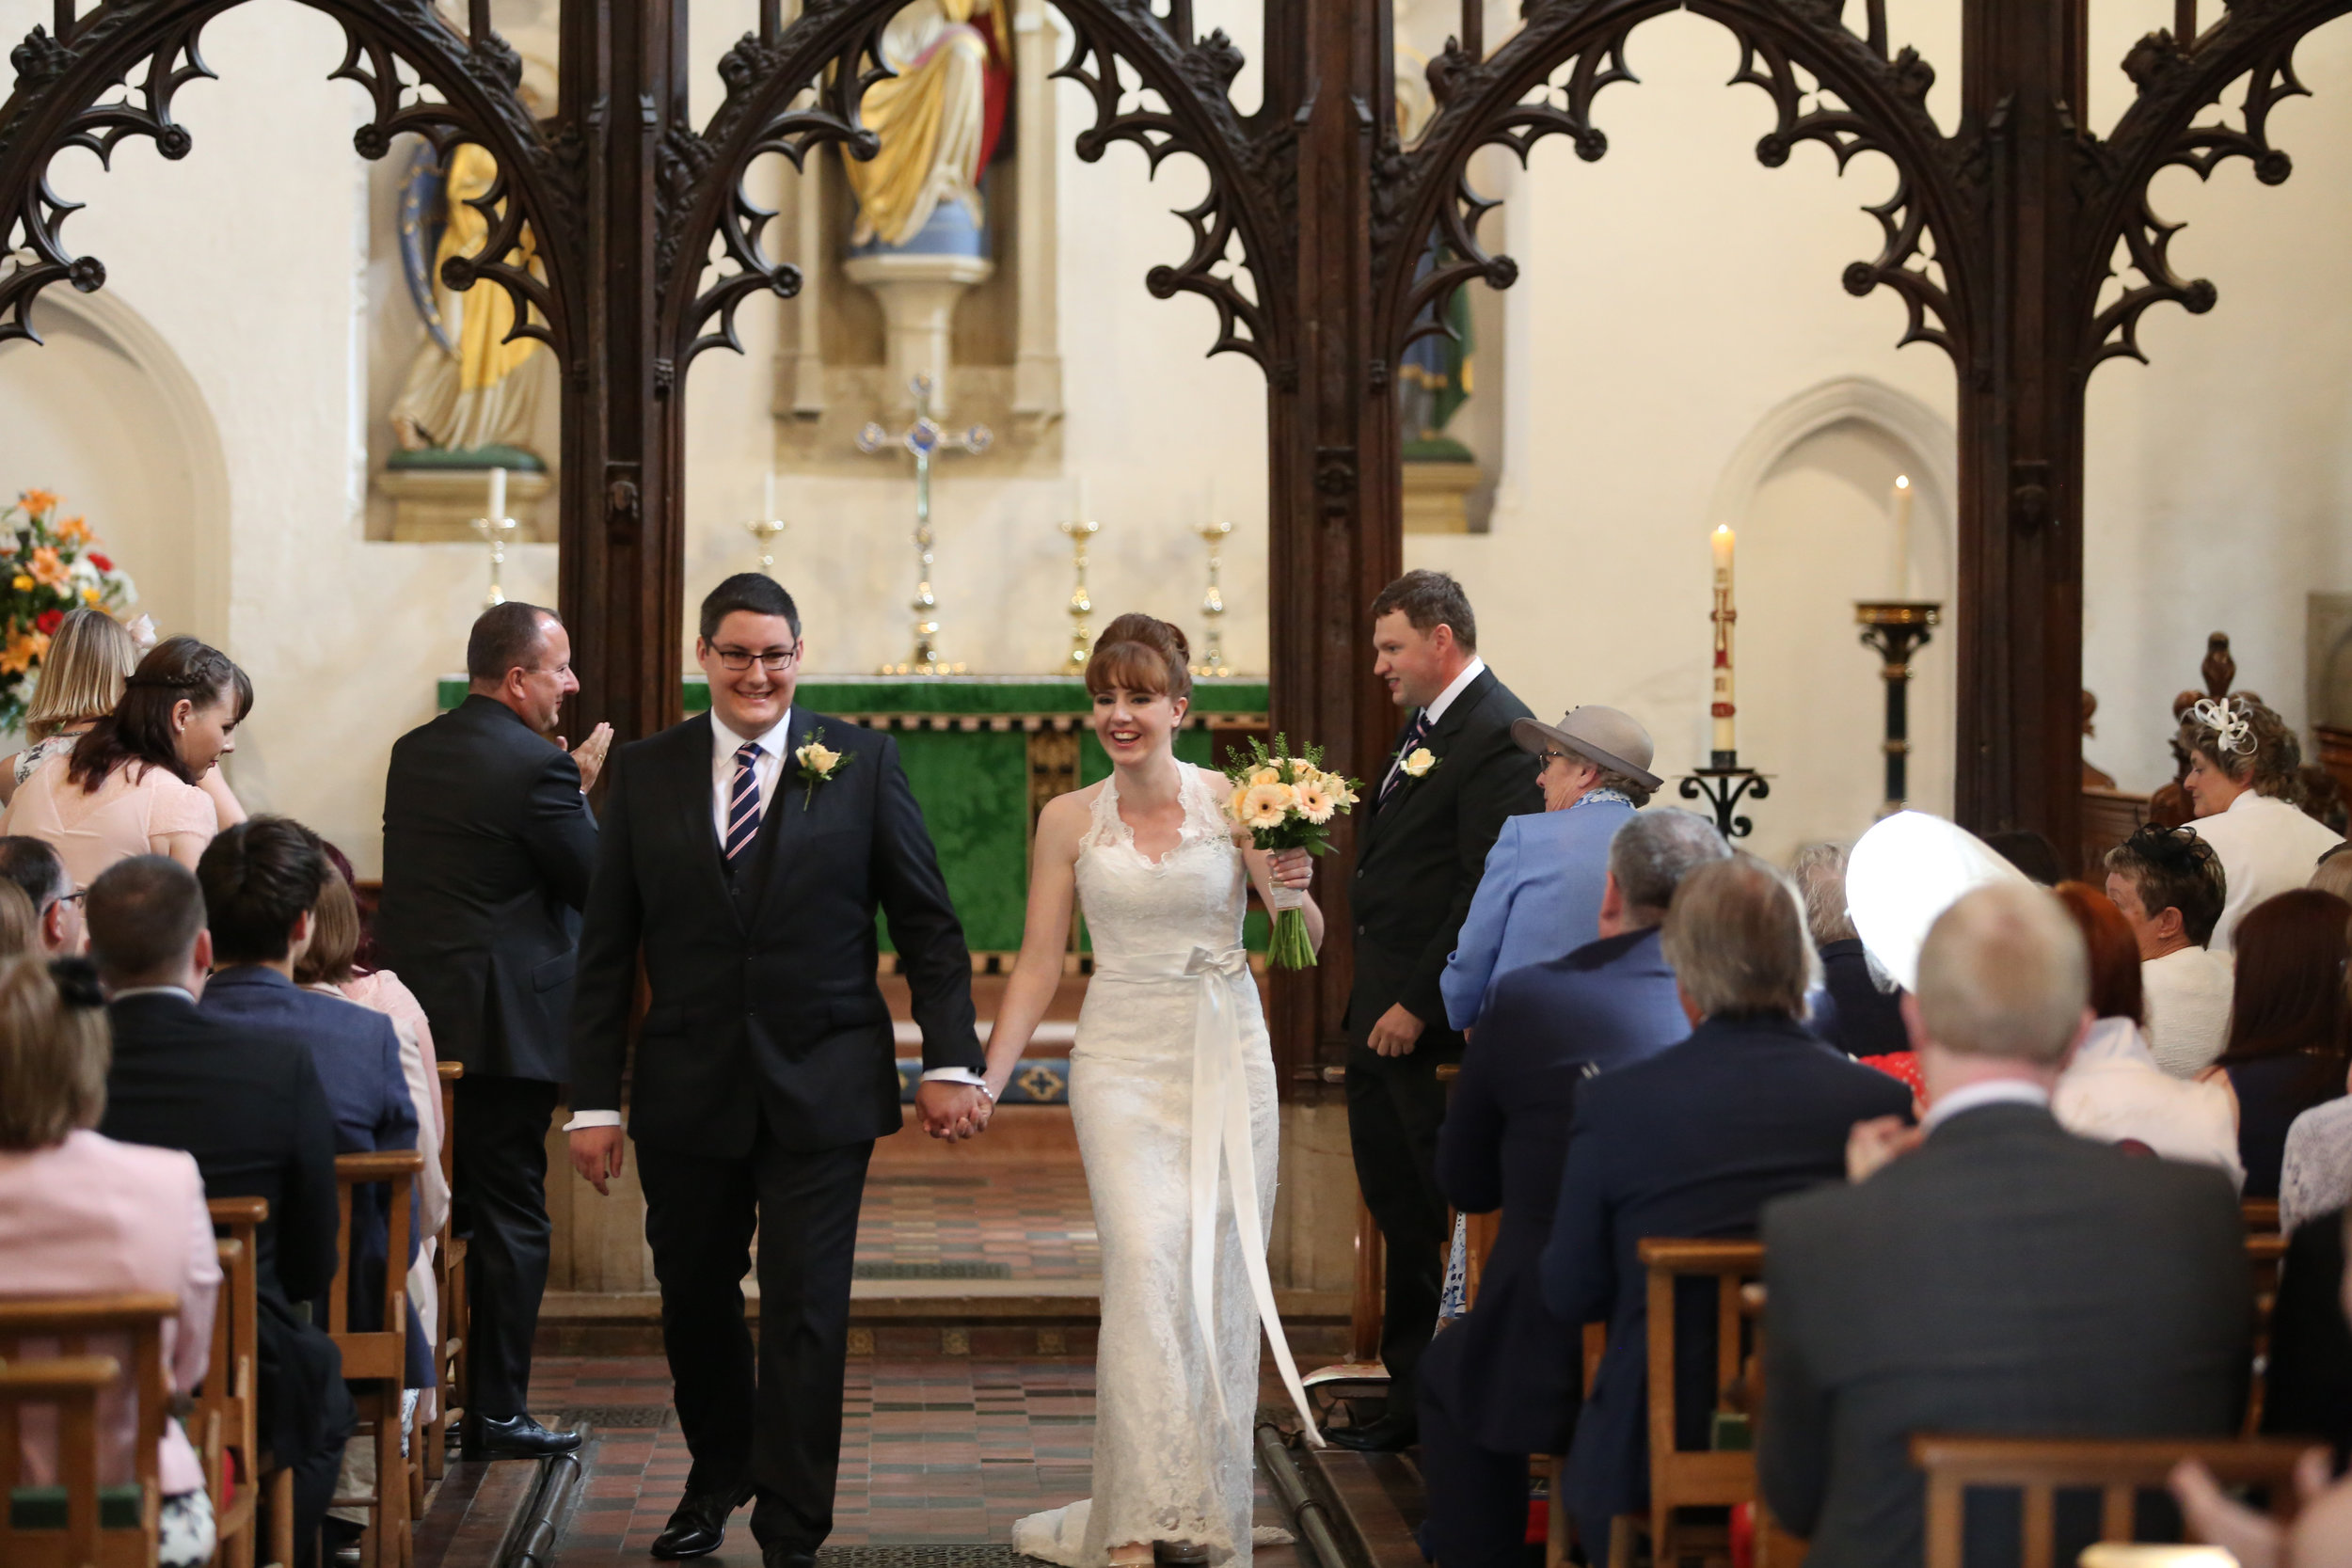 JELLYFISH WEDDING PHOTOGRAPHY THE PRIORY ST PETER CHURCH DUNSTABLE (23).jpg